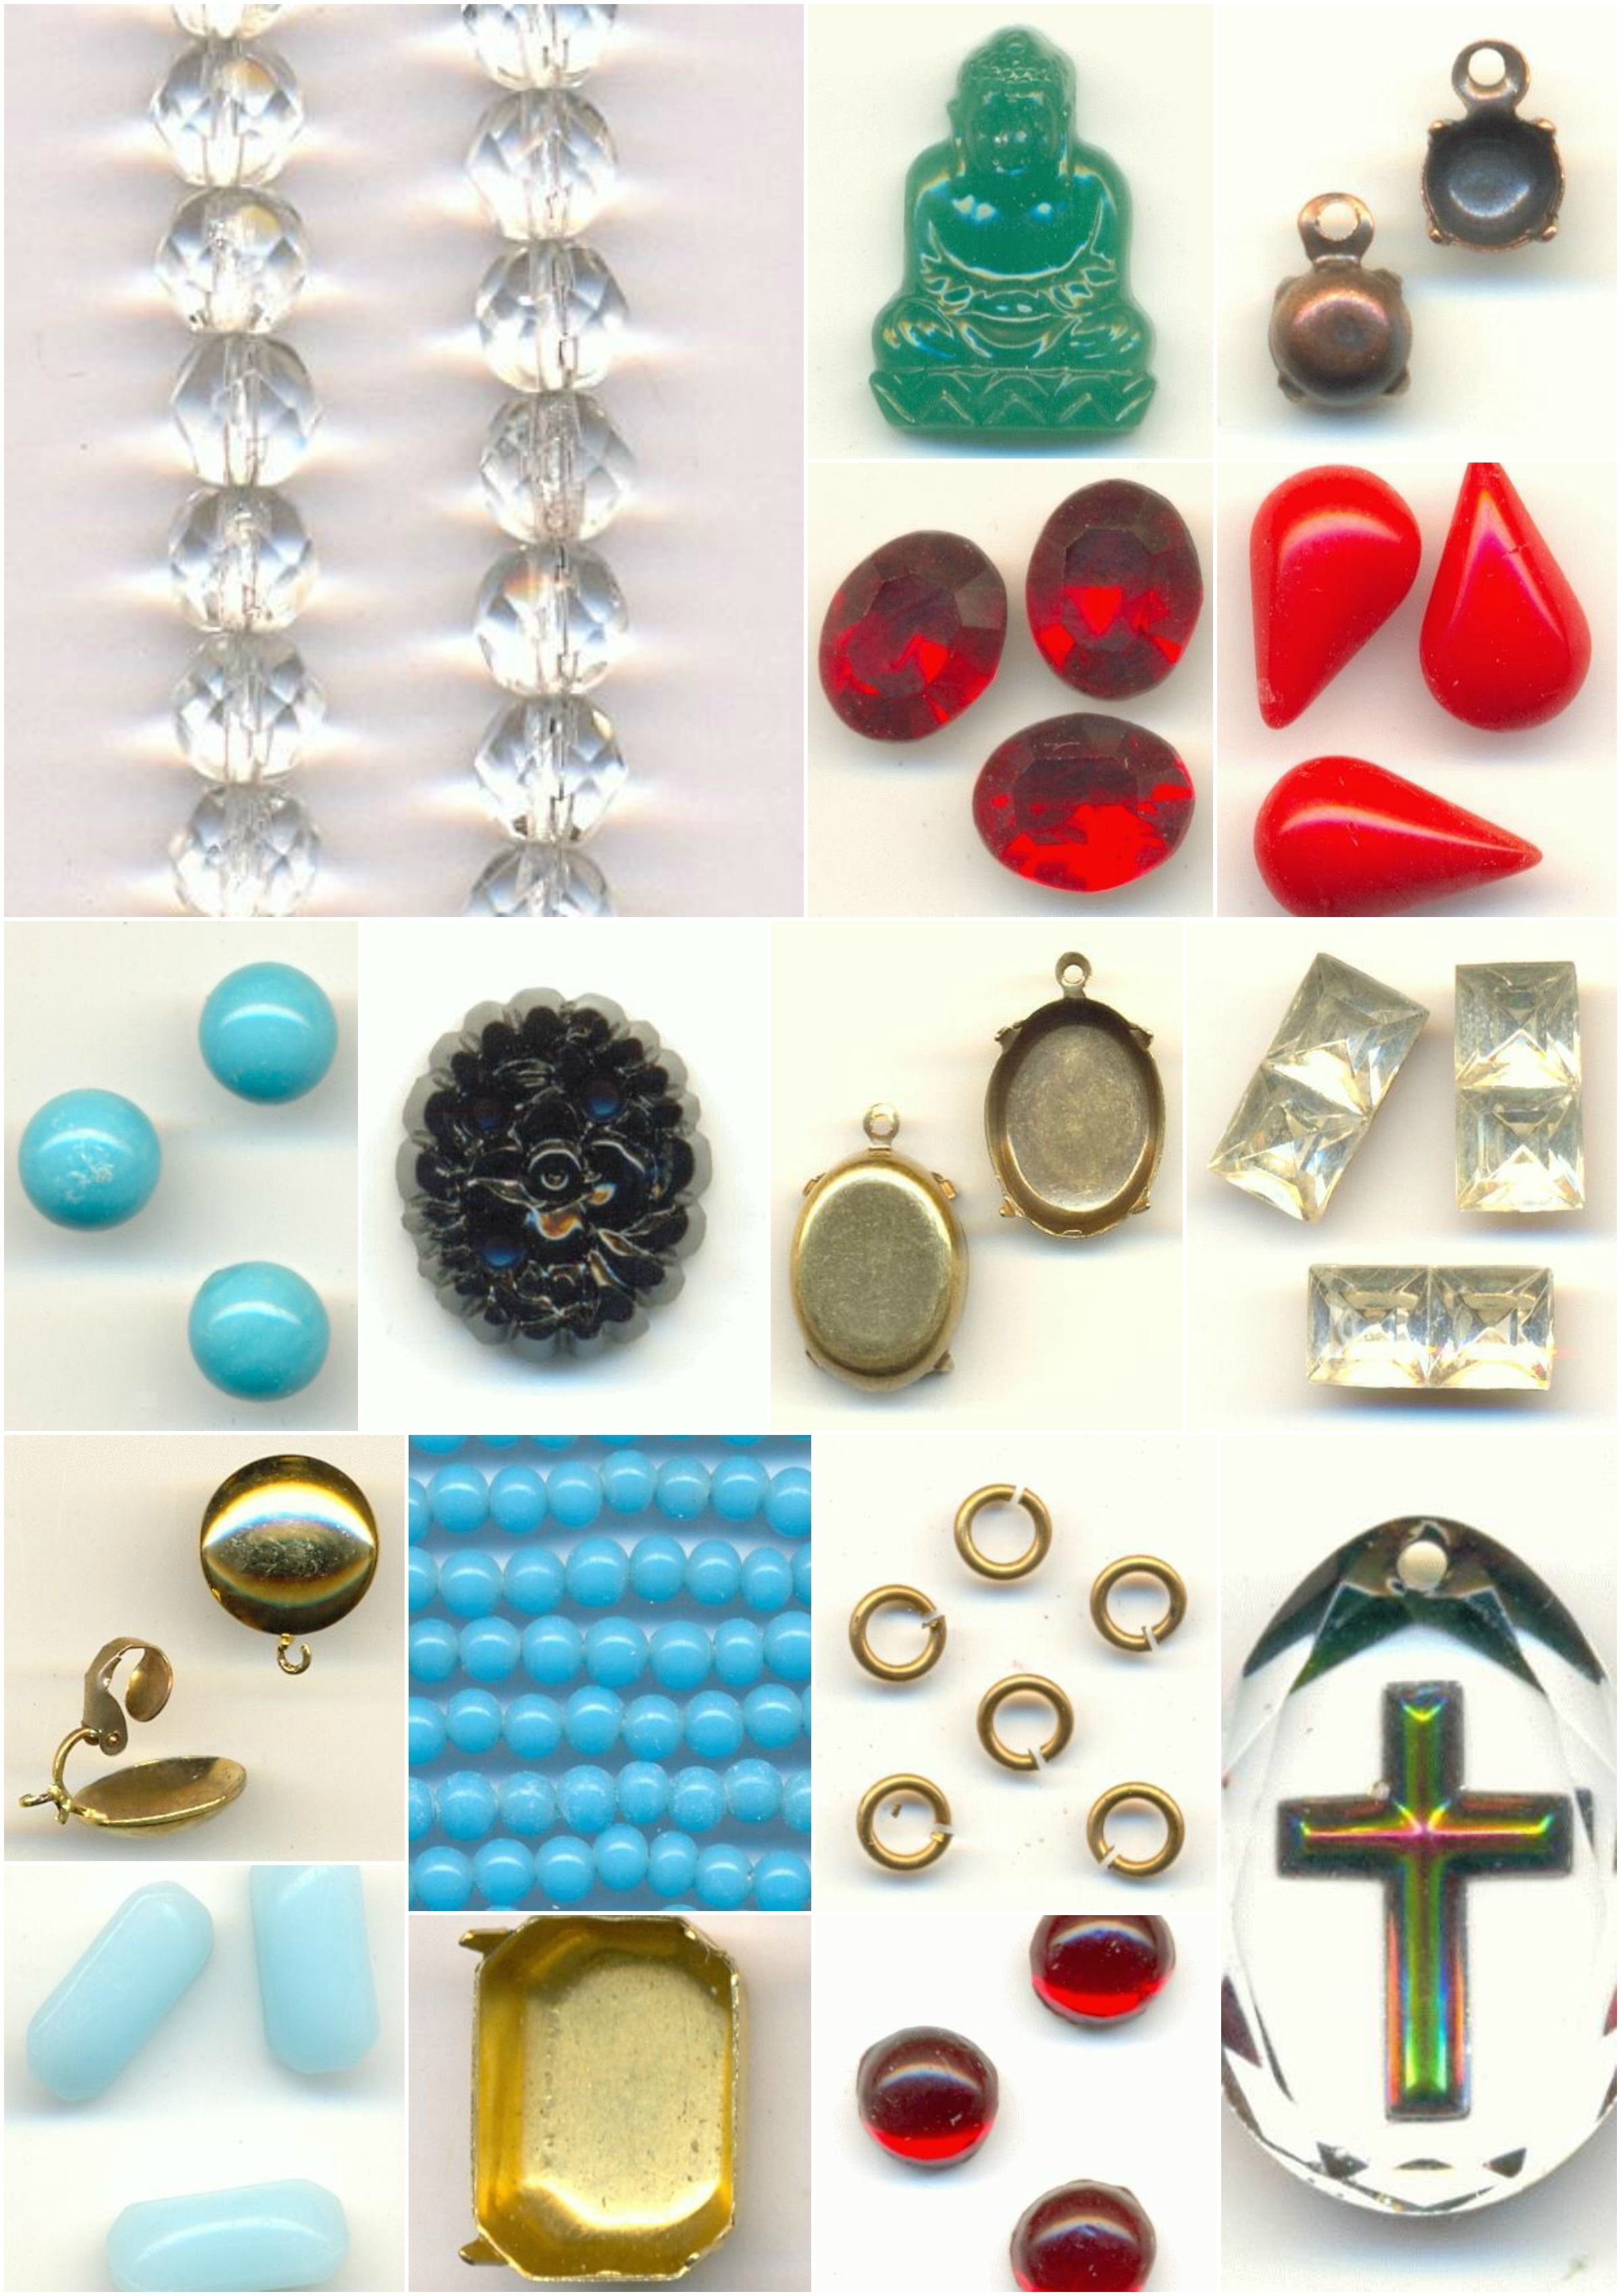 Jan S Jewels Wholesale Jewelry Making Supplies Category Launches